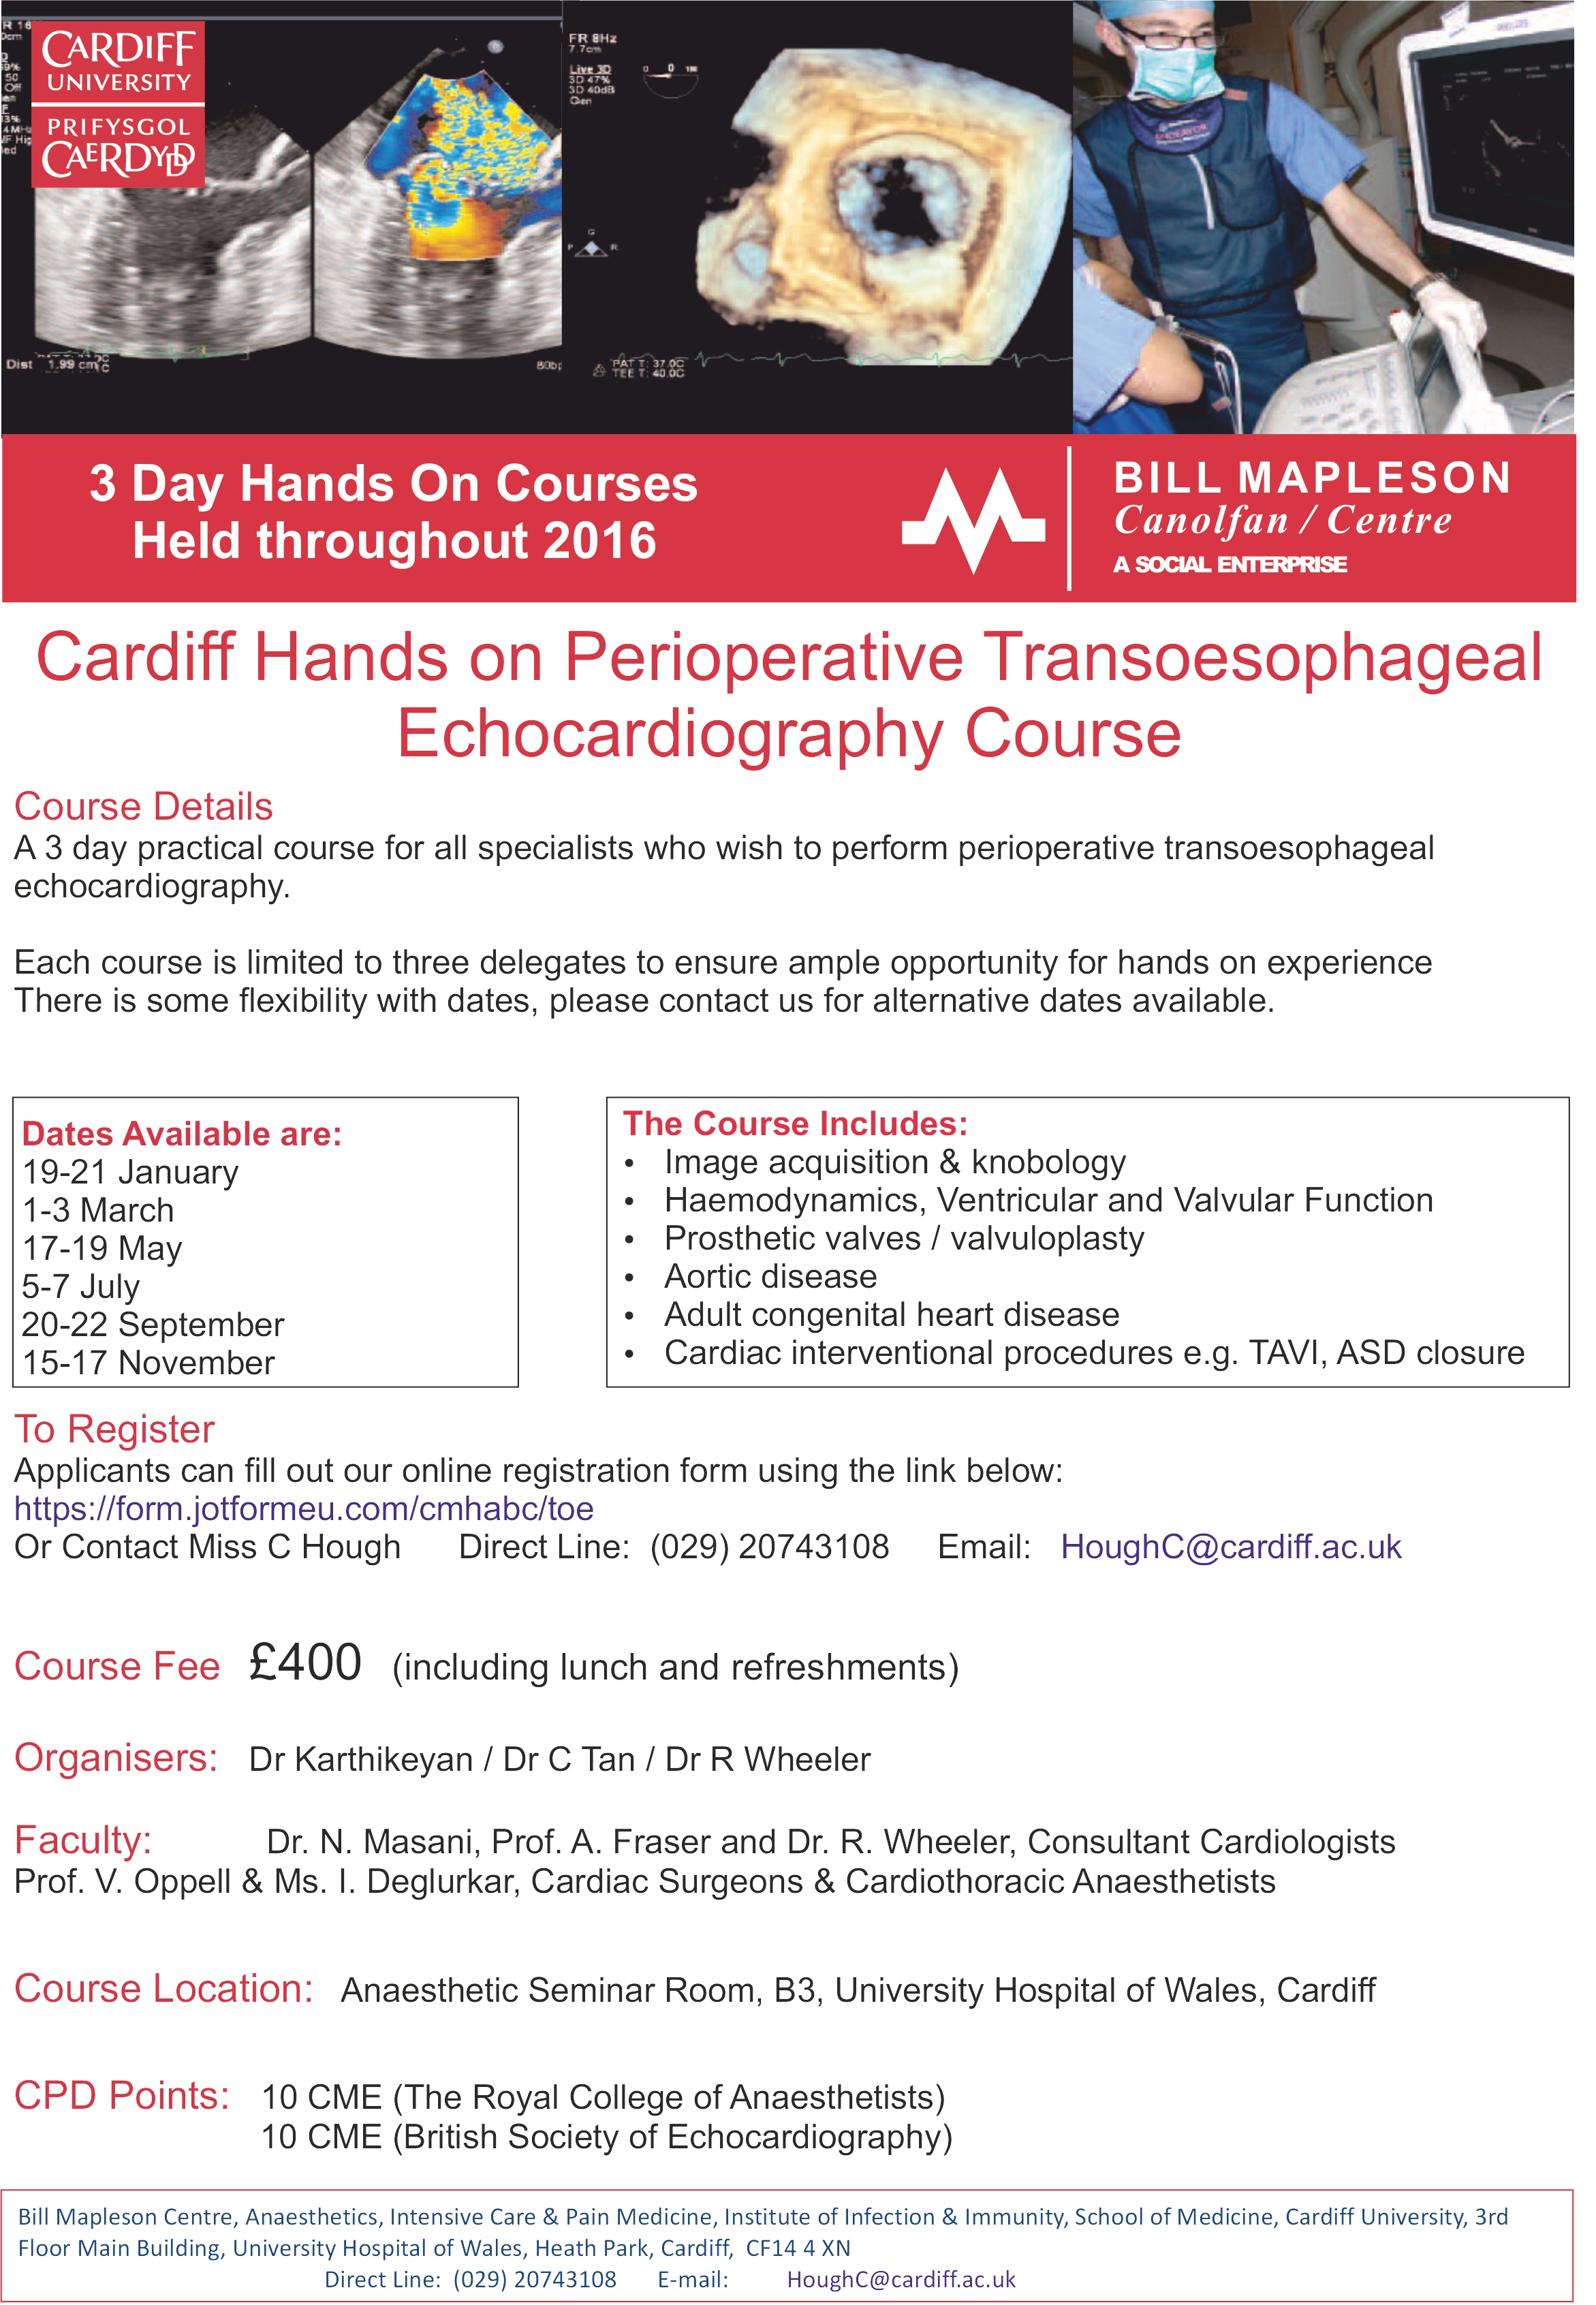 Perioperative Transoesophageal Echocardiography Symposium and Courses